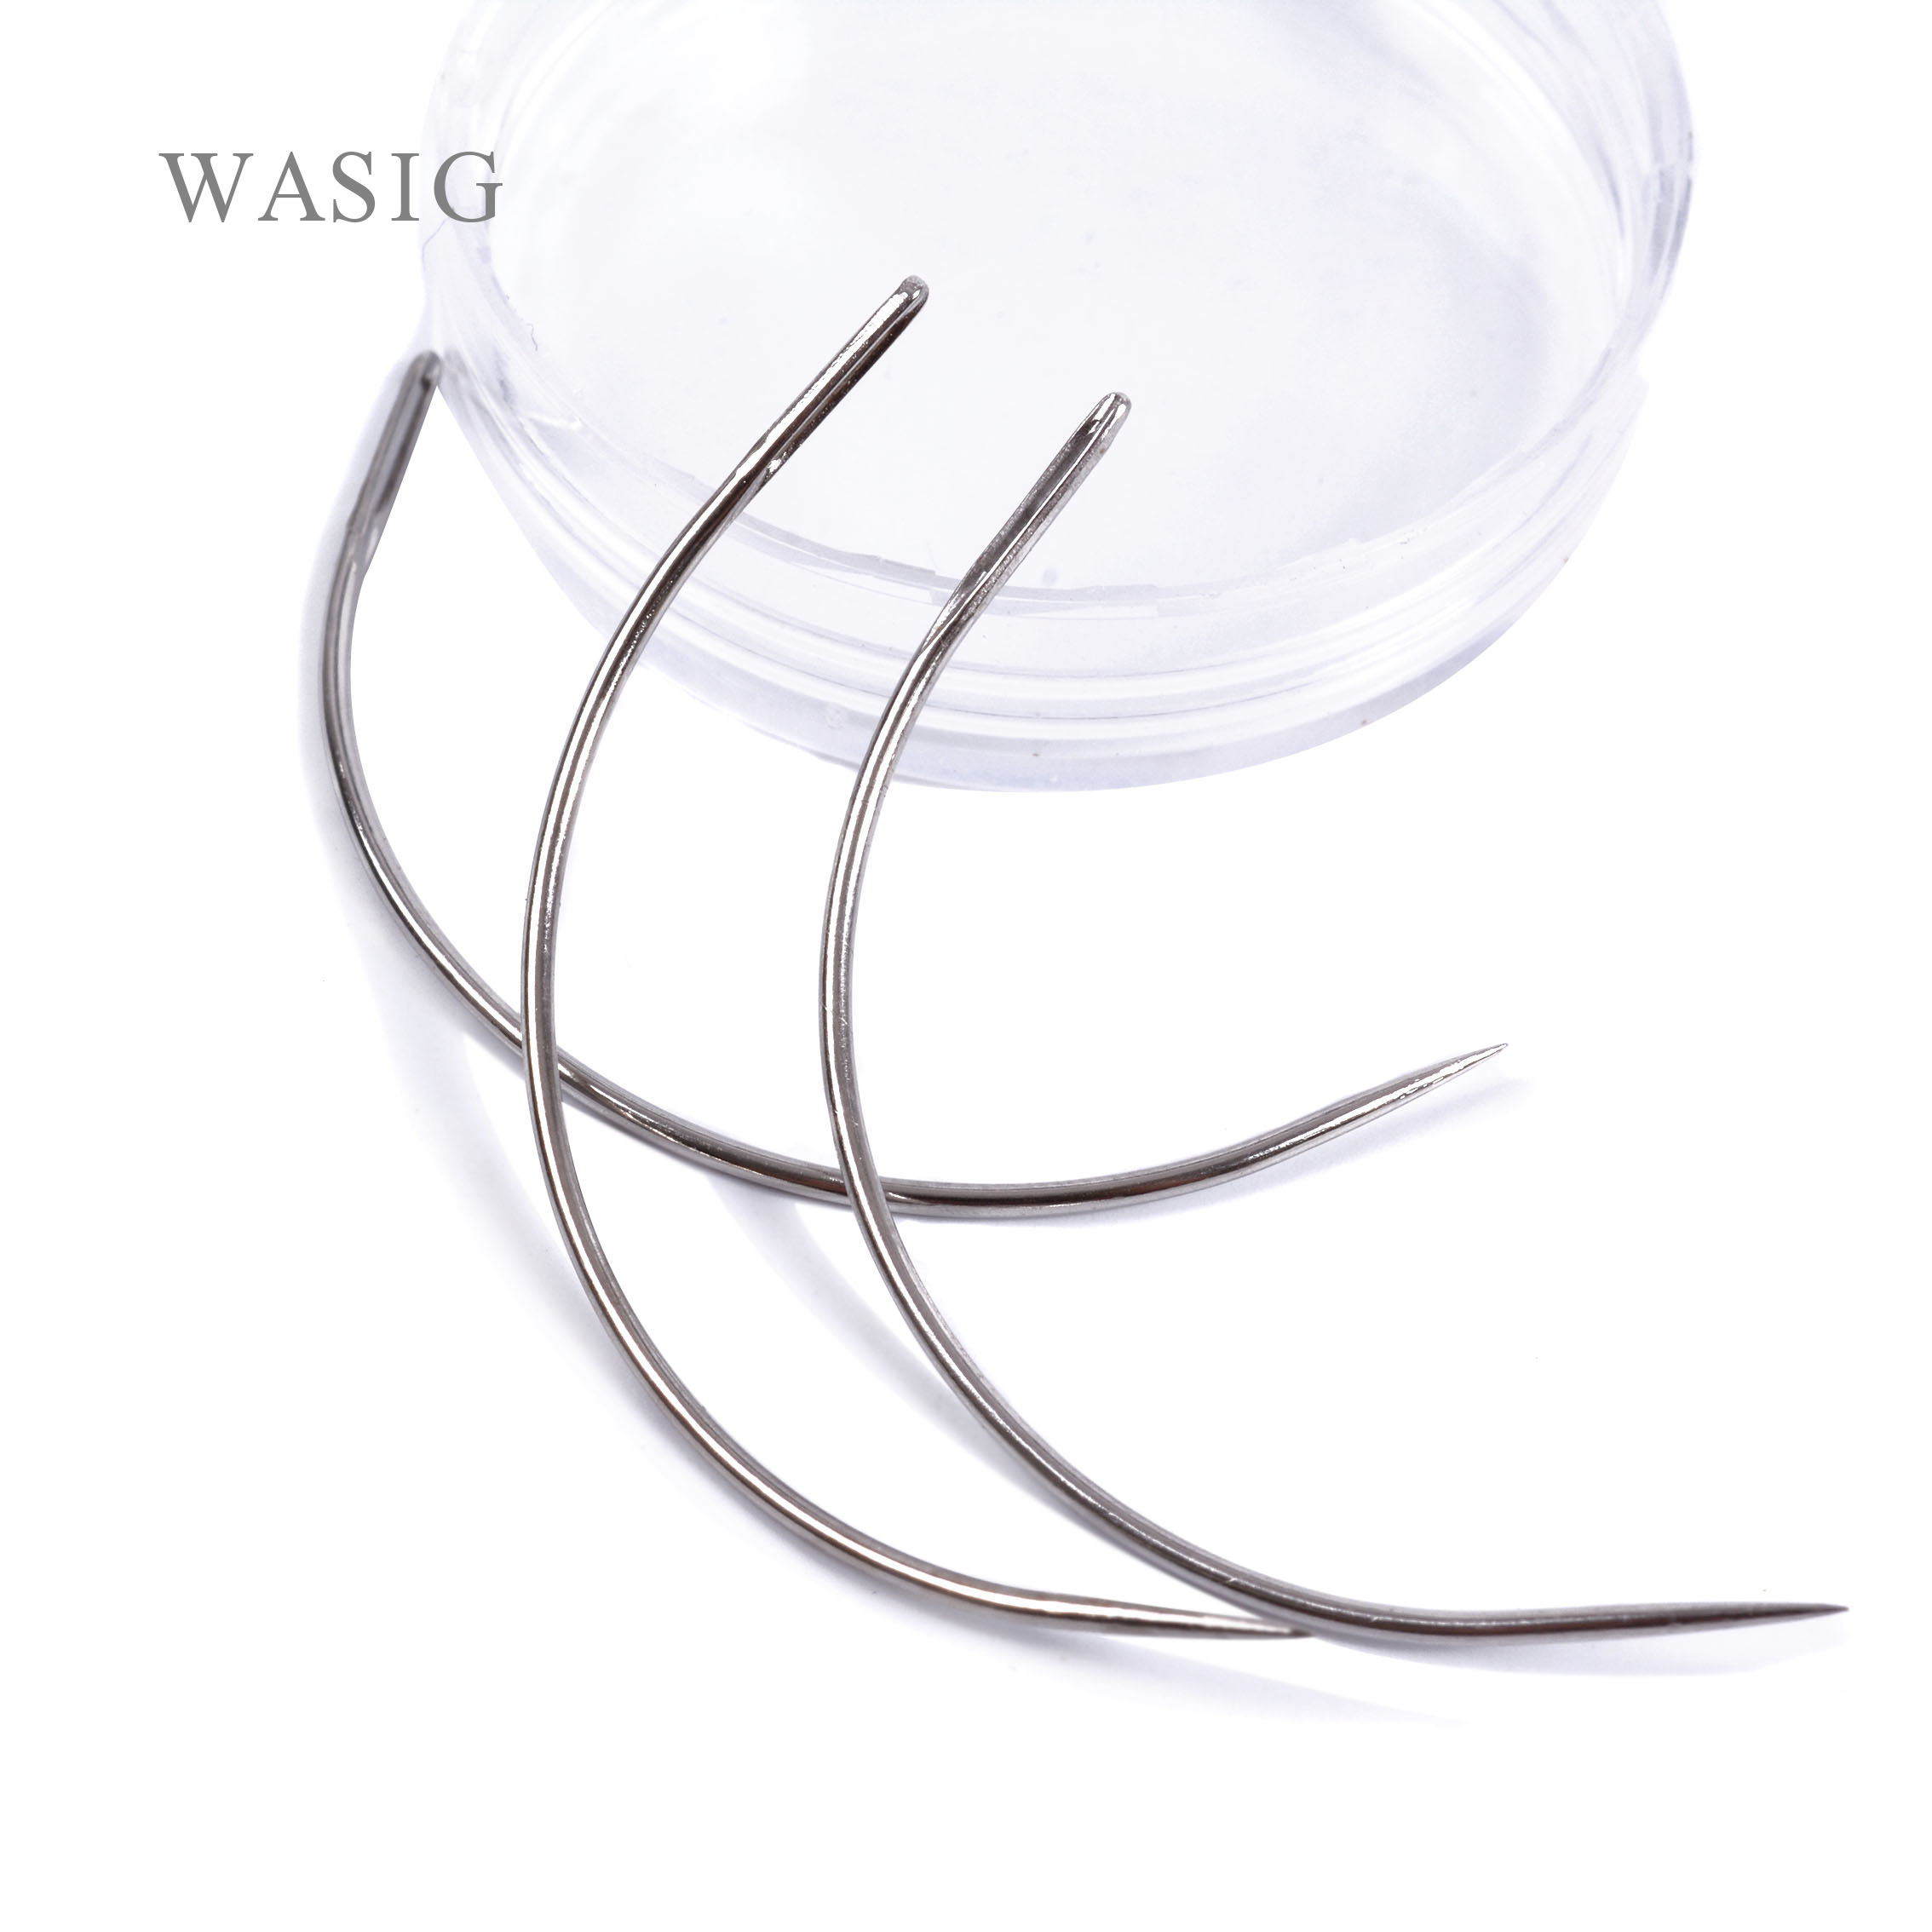 50pcs 9CM C Shape Curved Needles Threader Sewing/Weaving Needles For Human Hair Extension Weft Weaving